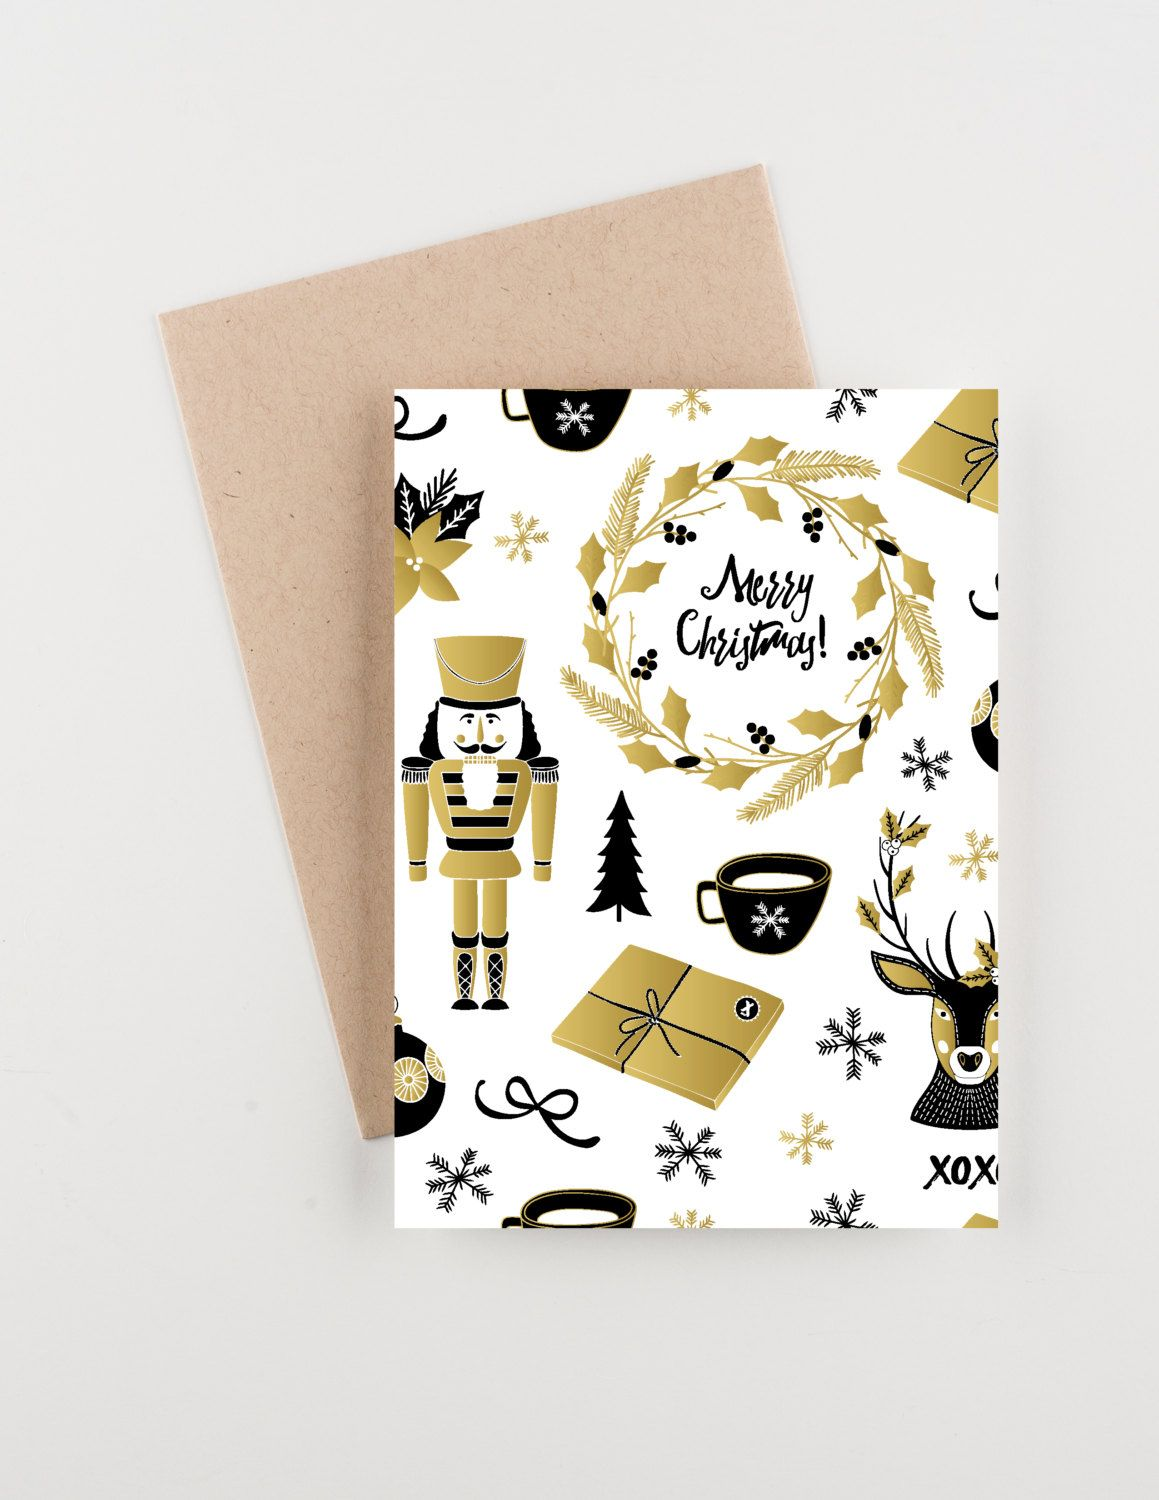 Christmas time holiday 2015 christmas and new years greetings card christmas time holiday 2015 christmas and new years greetings card by seahorsebendpress on etsy m4hsunfo